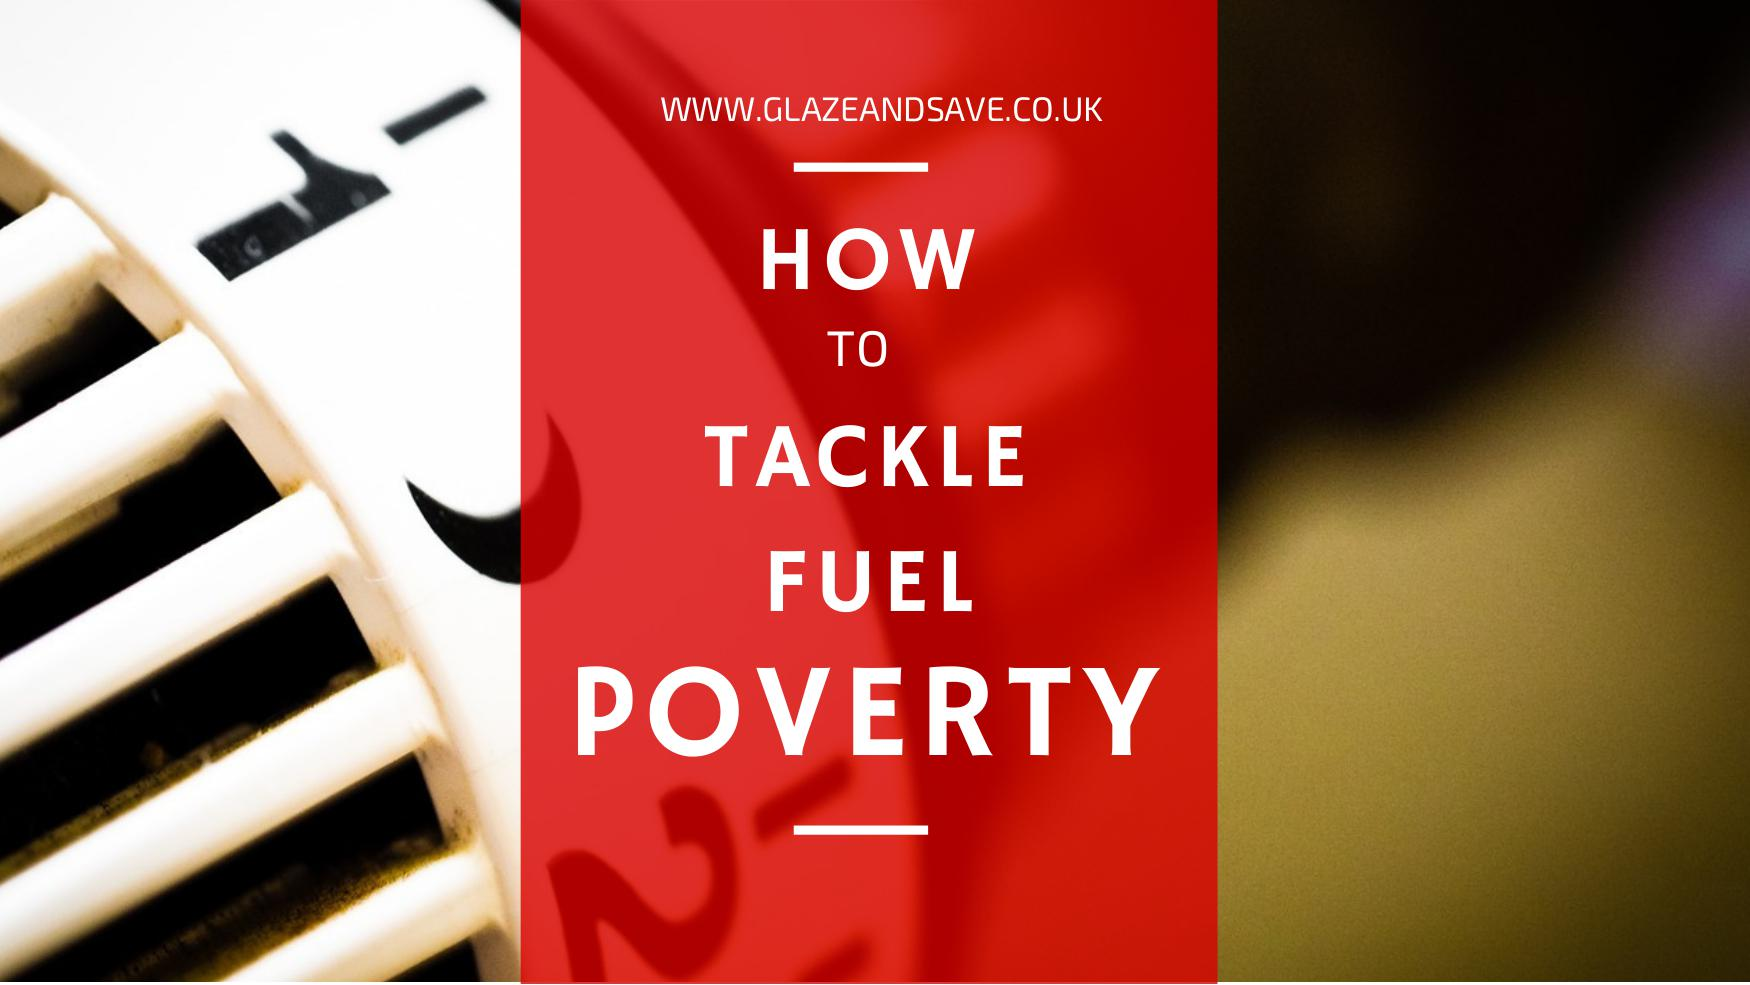 How to tackle fuel poverty by Glaze & Save, bespoke magnetic secondary glazing and draught proofing specialists based in Perth, Scotland.